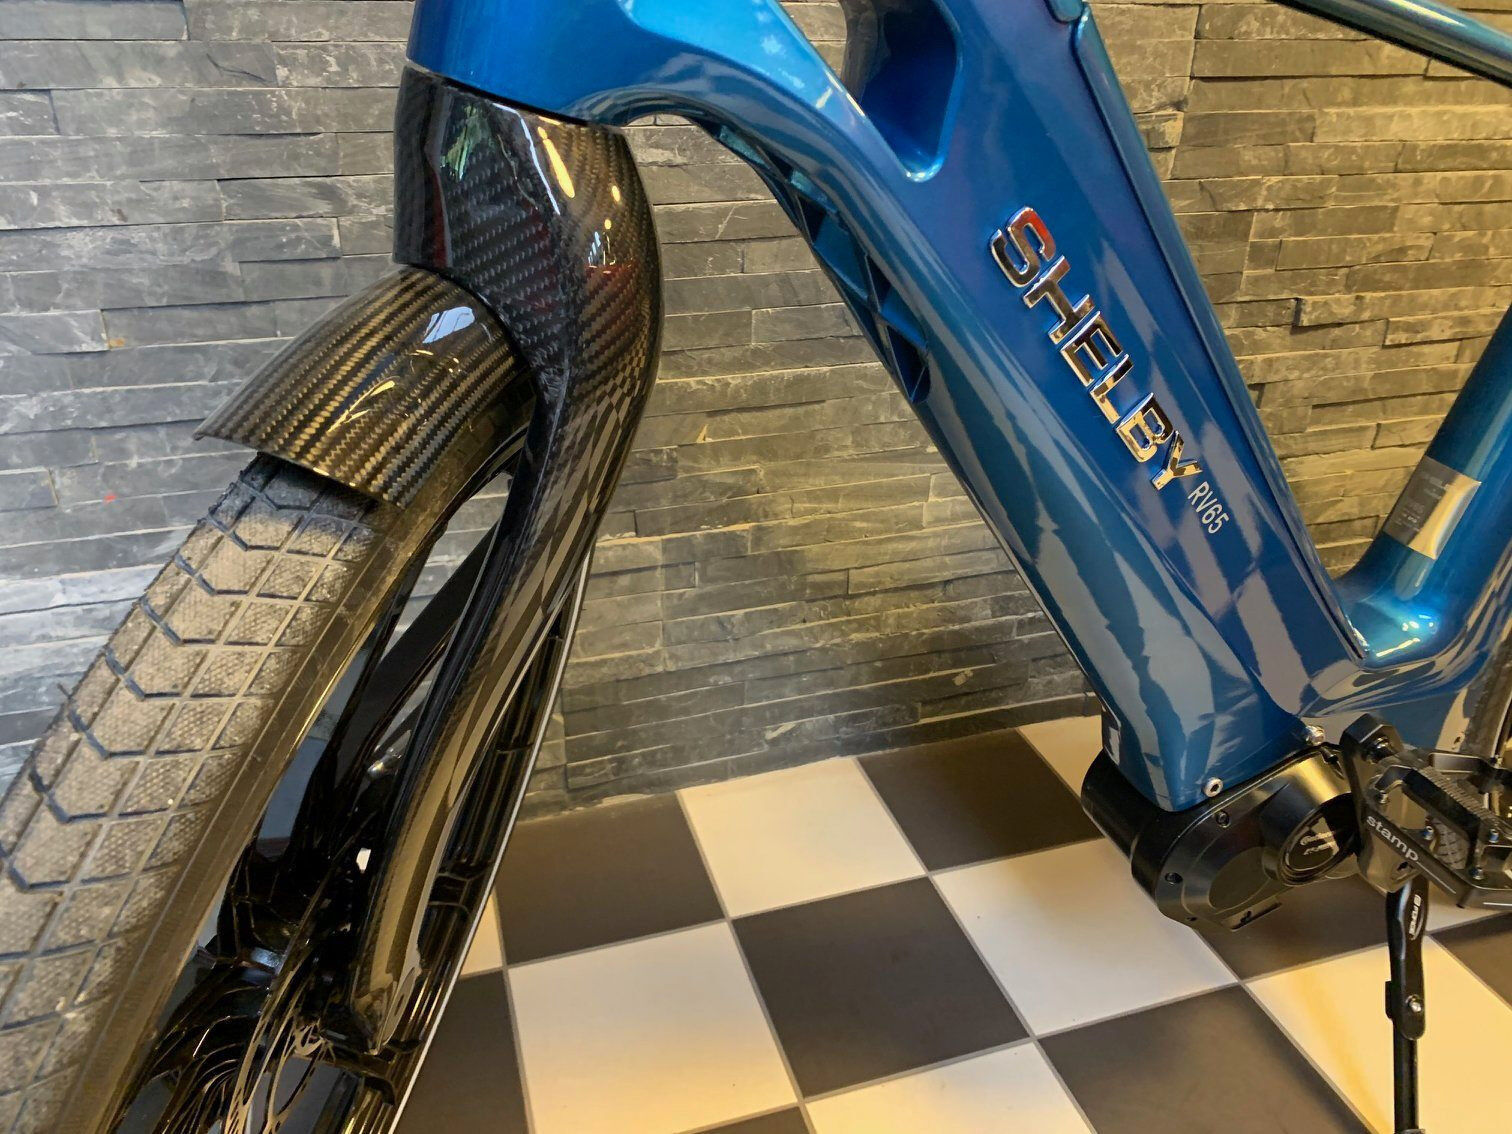 Ford Other E-Bike number 4 of 650